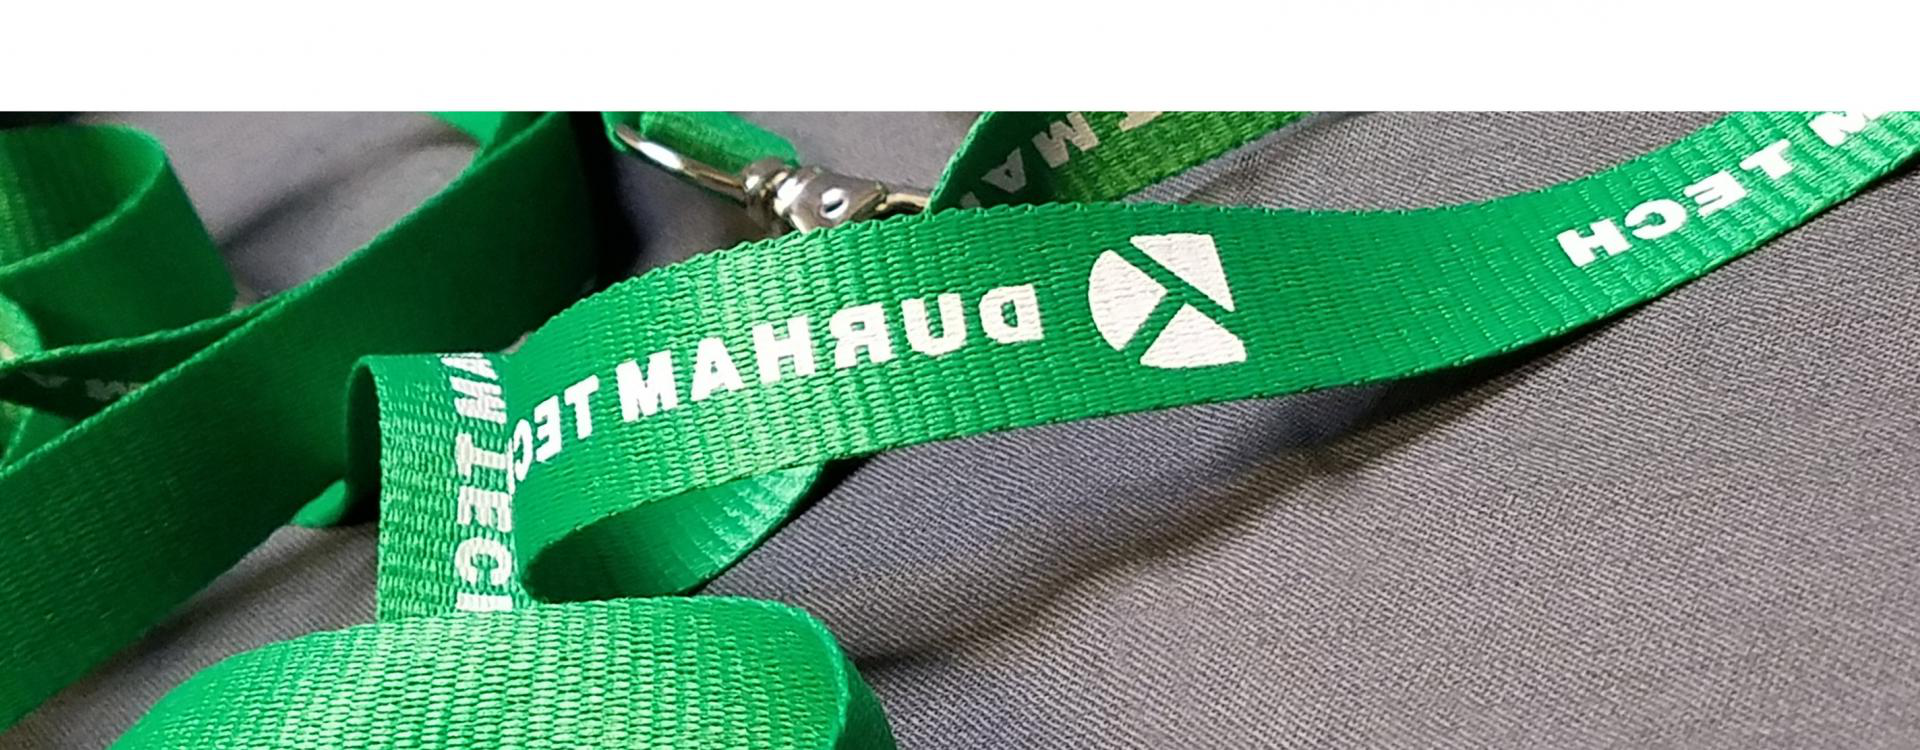 lanyard with 达勒姆技术 printed on it